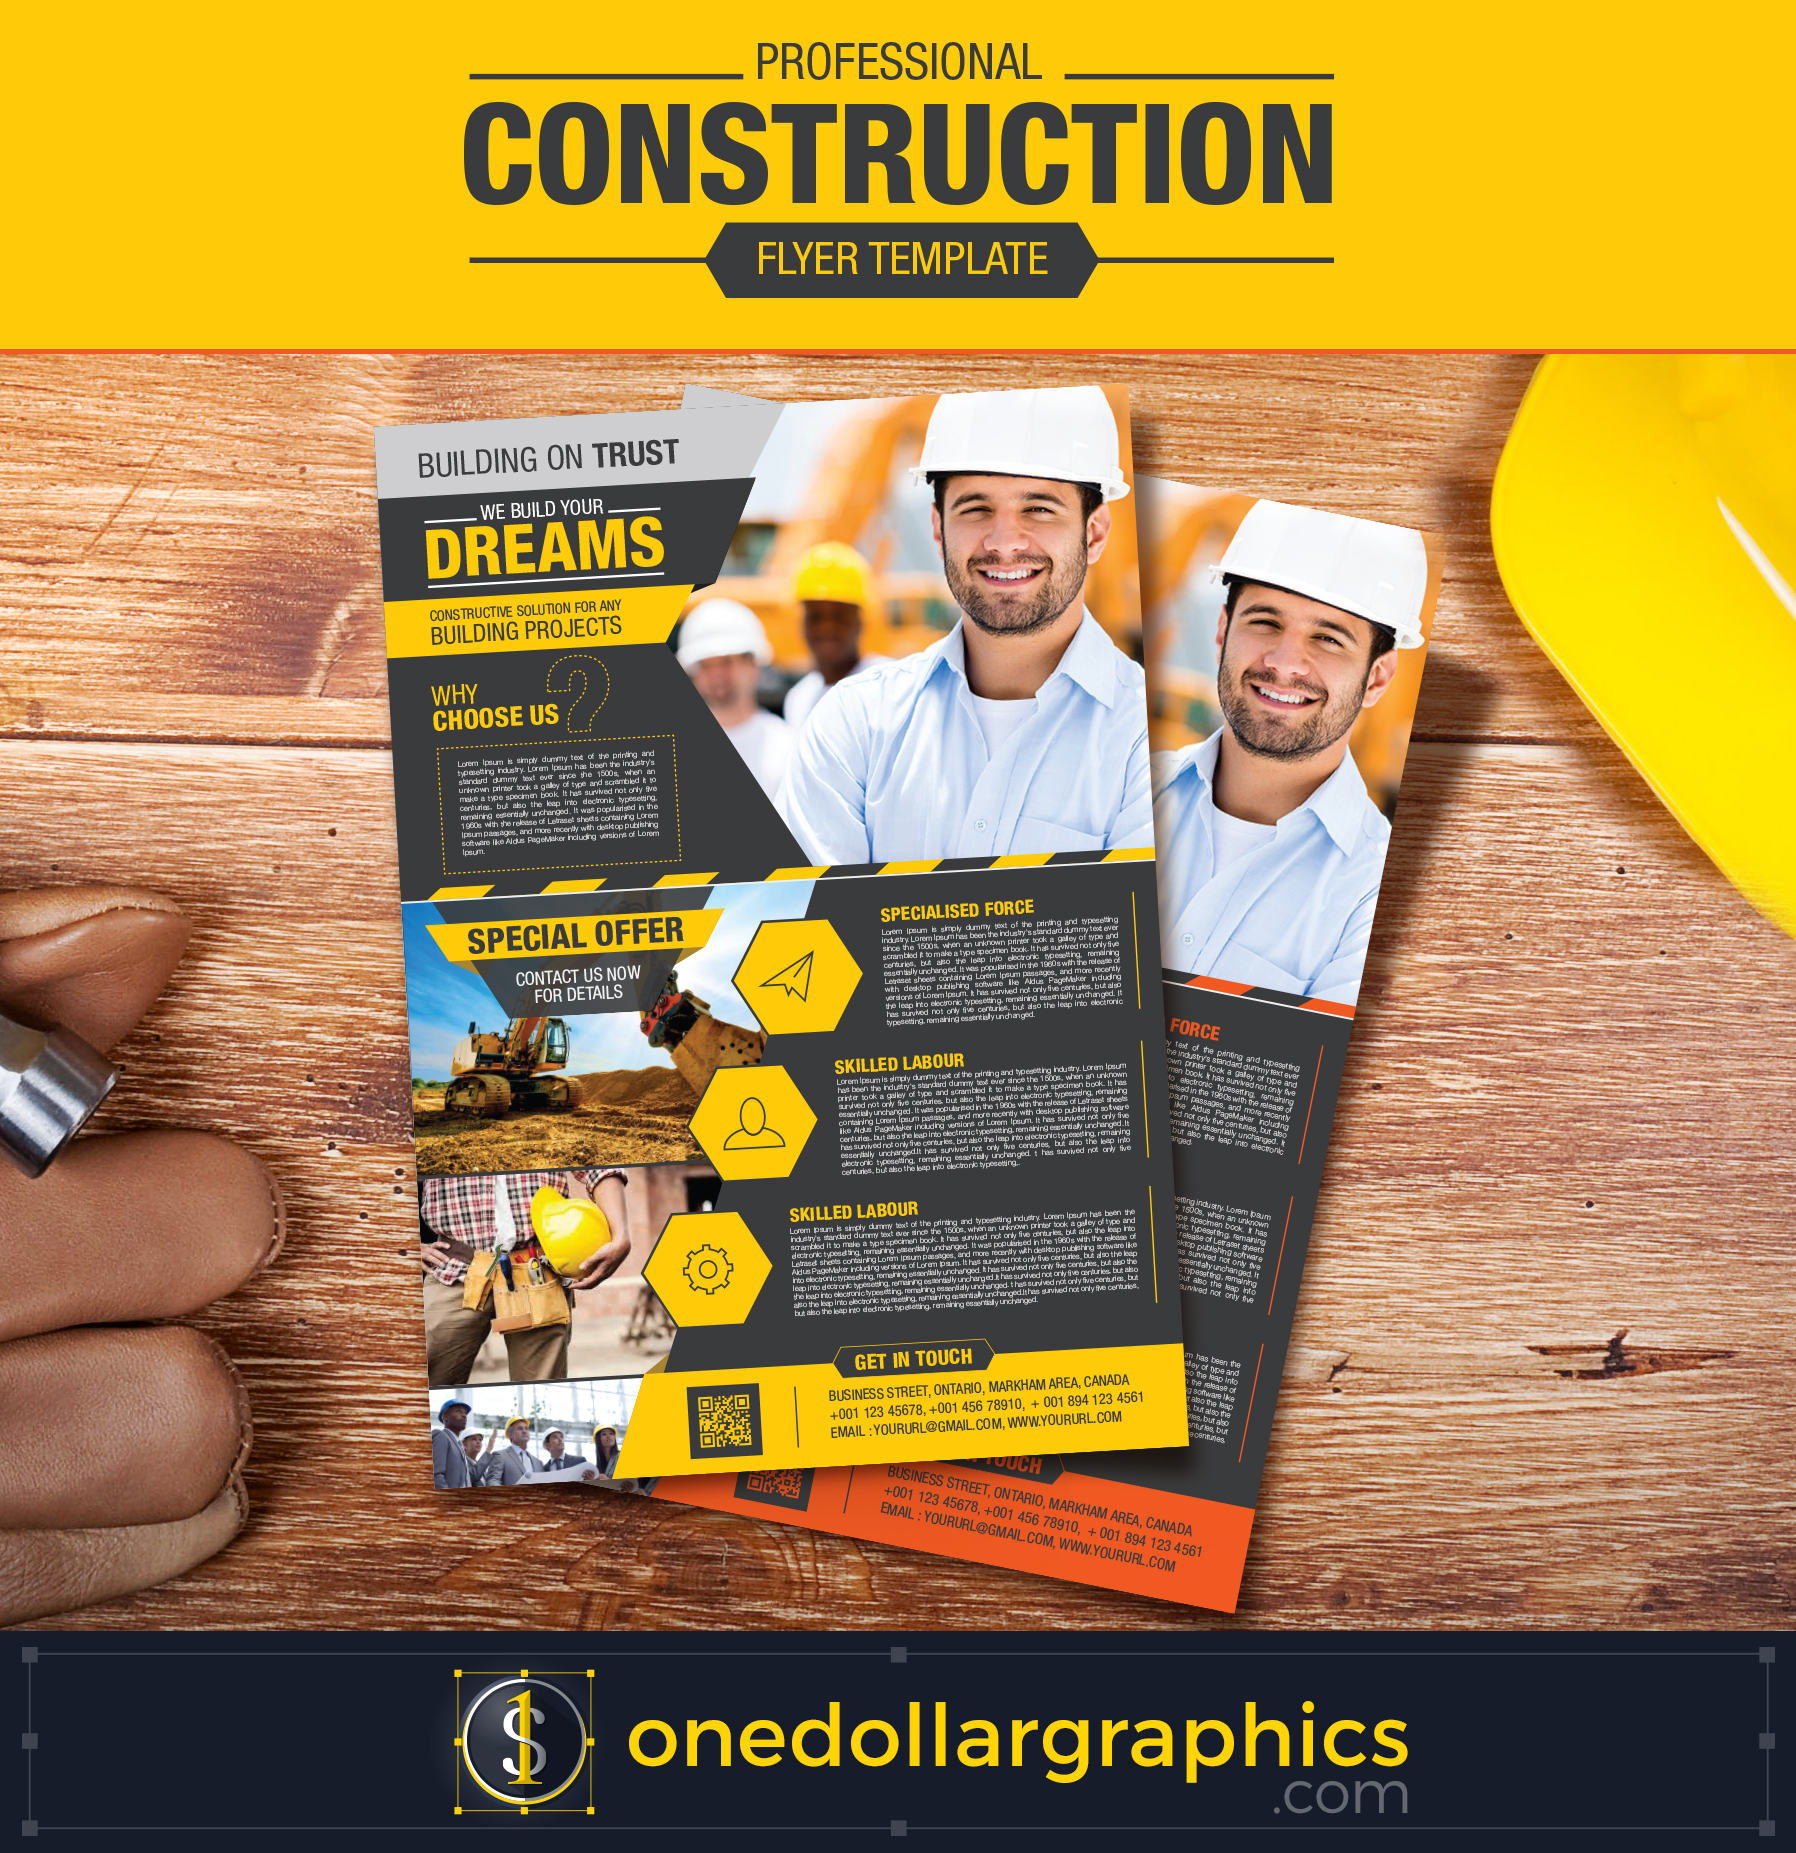 Professional-Construction-Flyer-Template